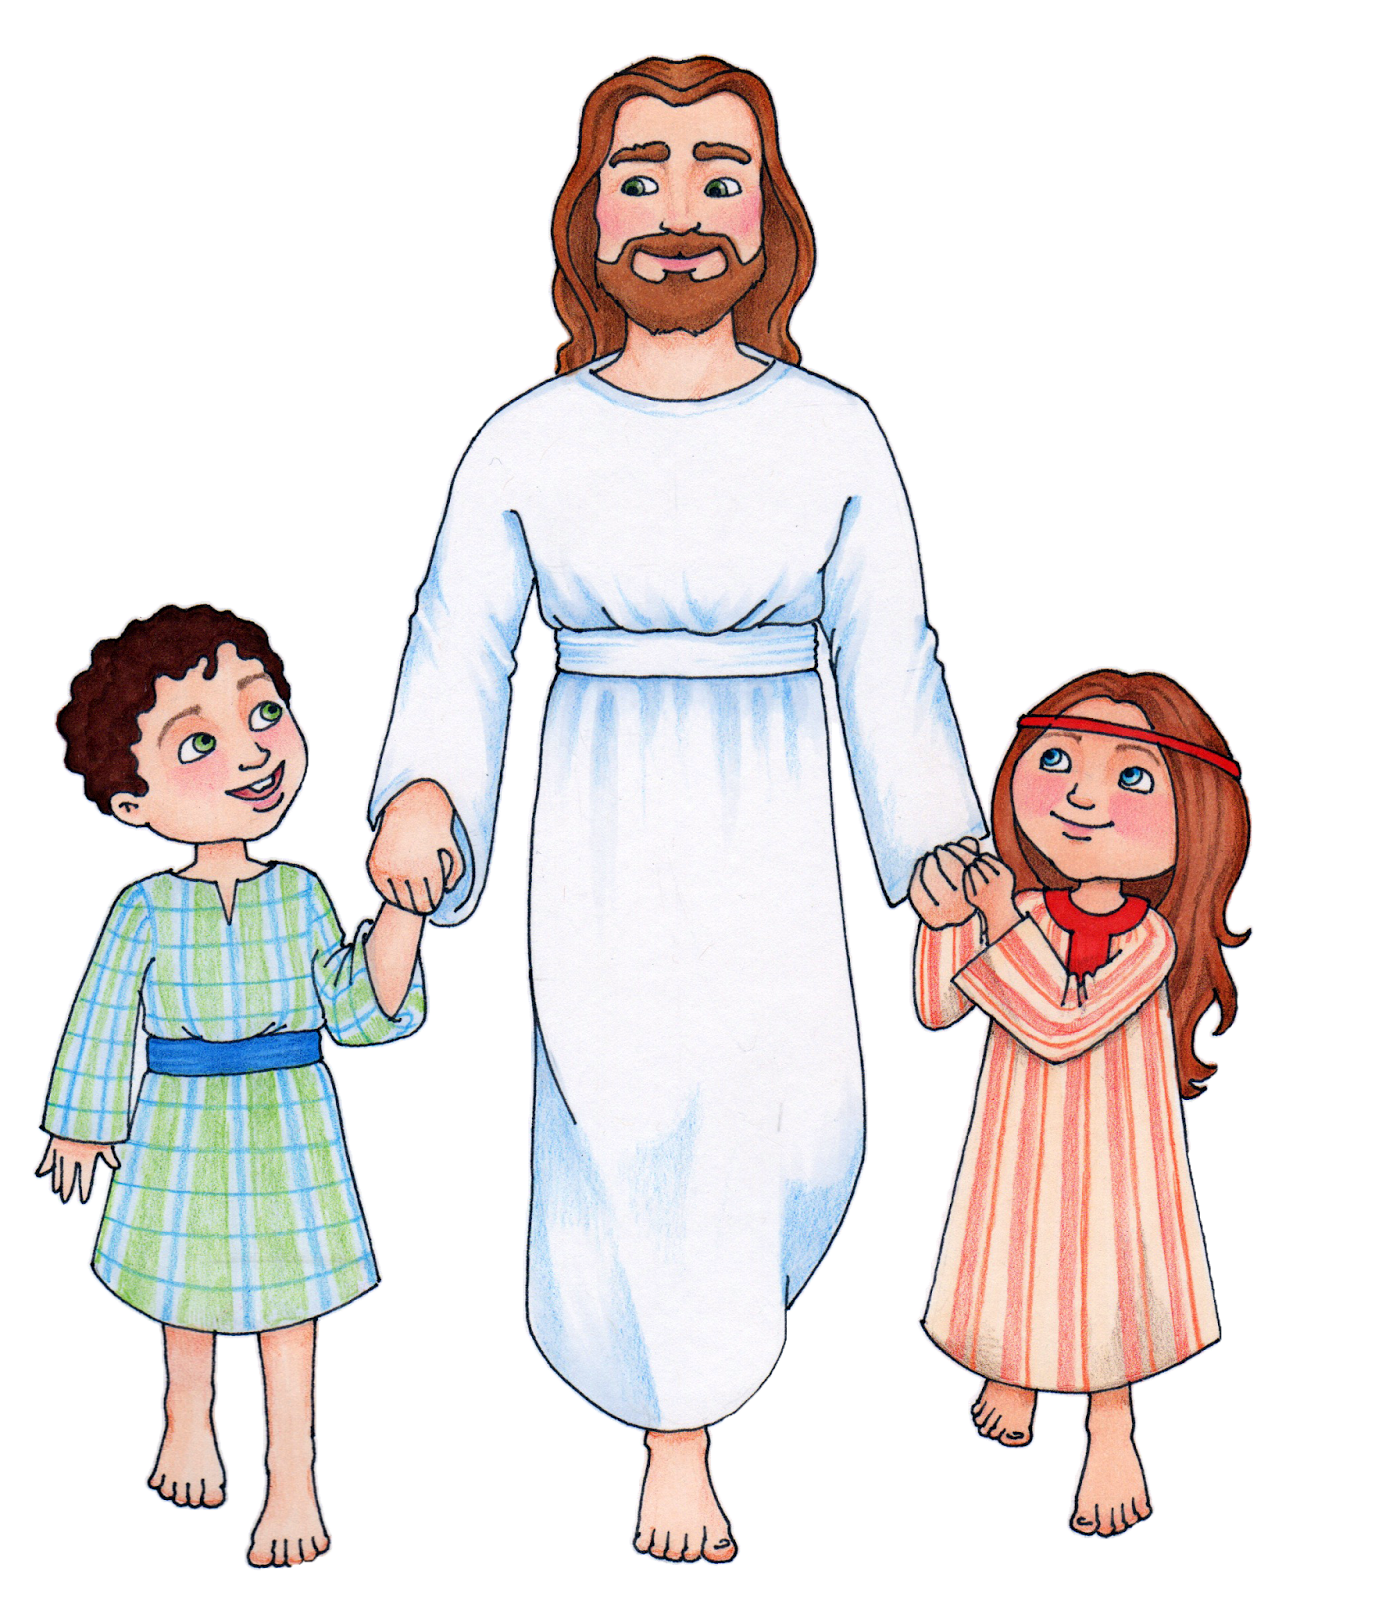 Susan fitch design also. Lds clipart president monson